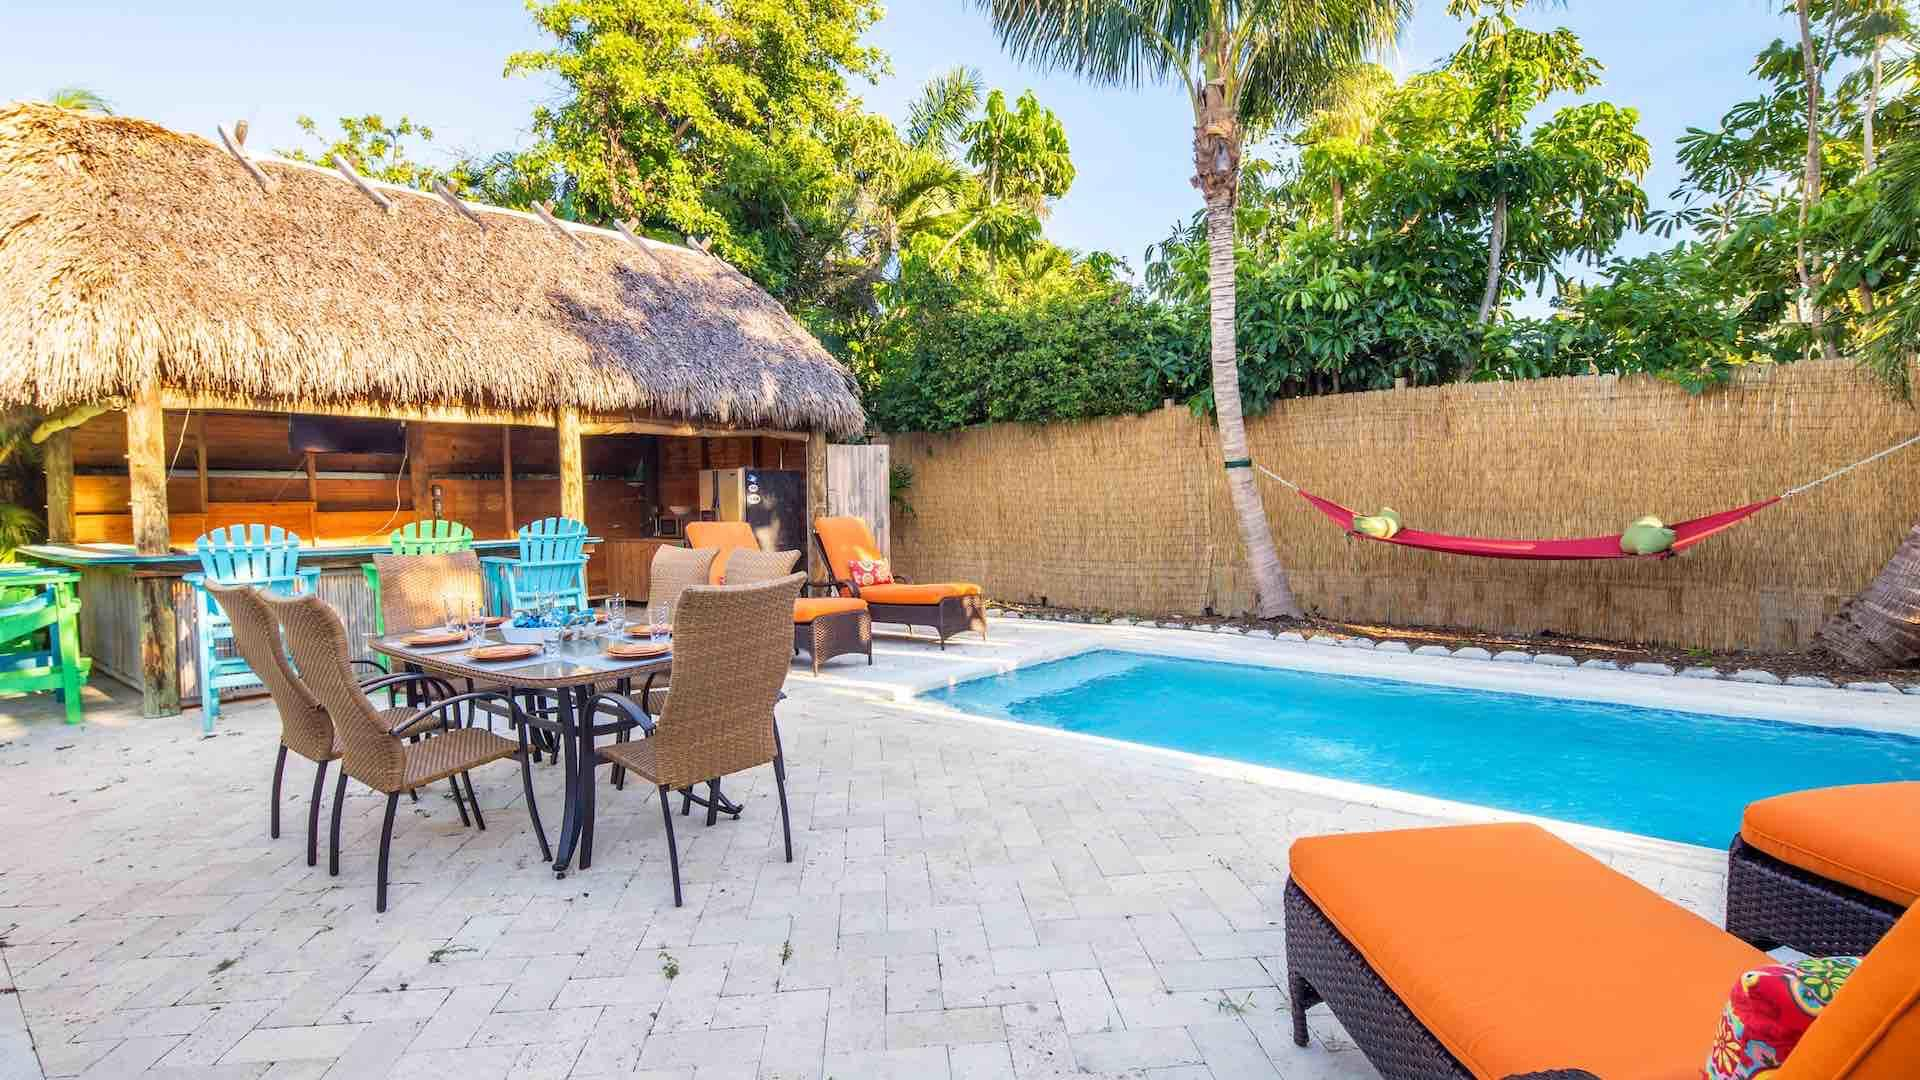 There is plenty of outdoor lounging and seating options around the pool...